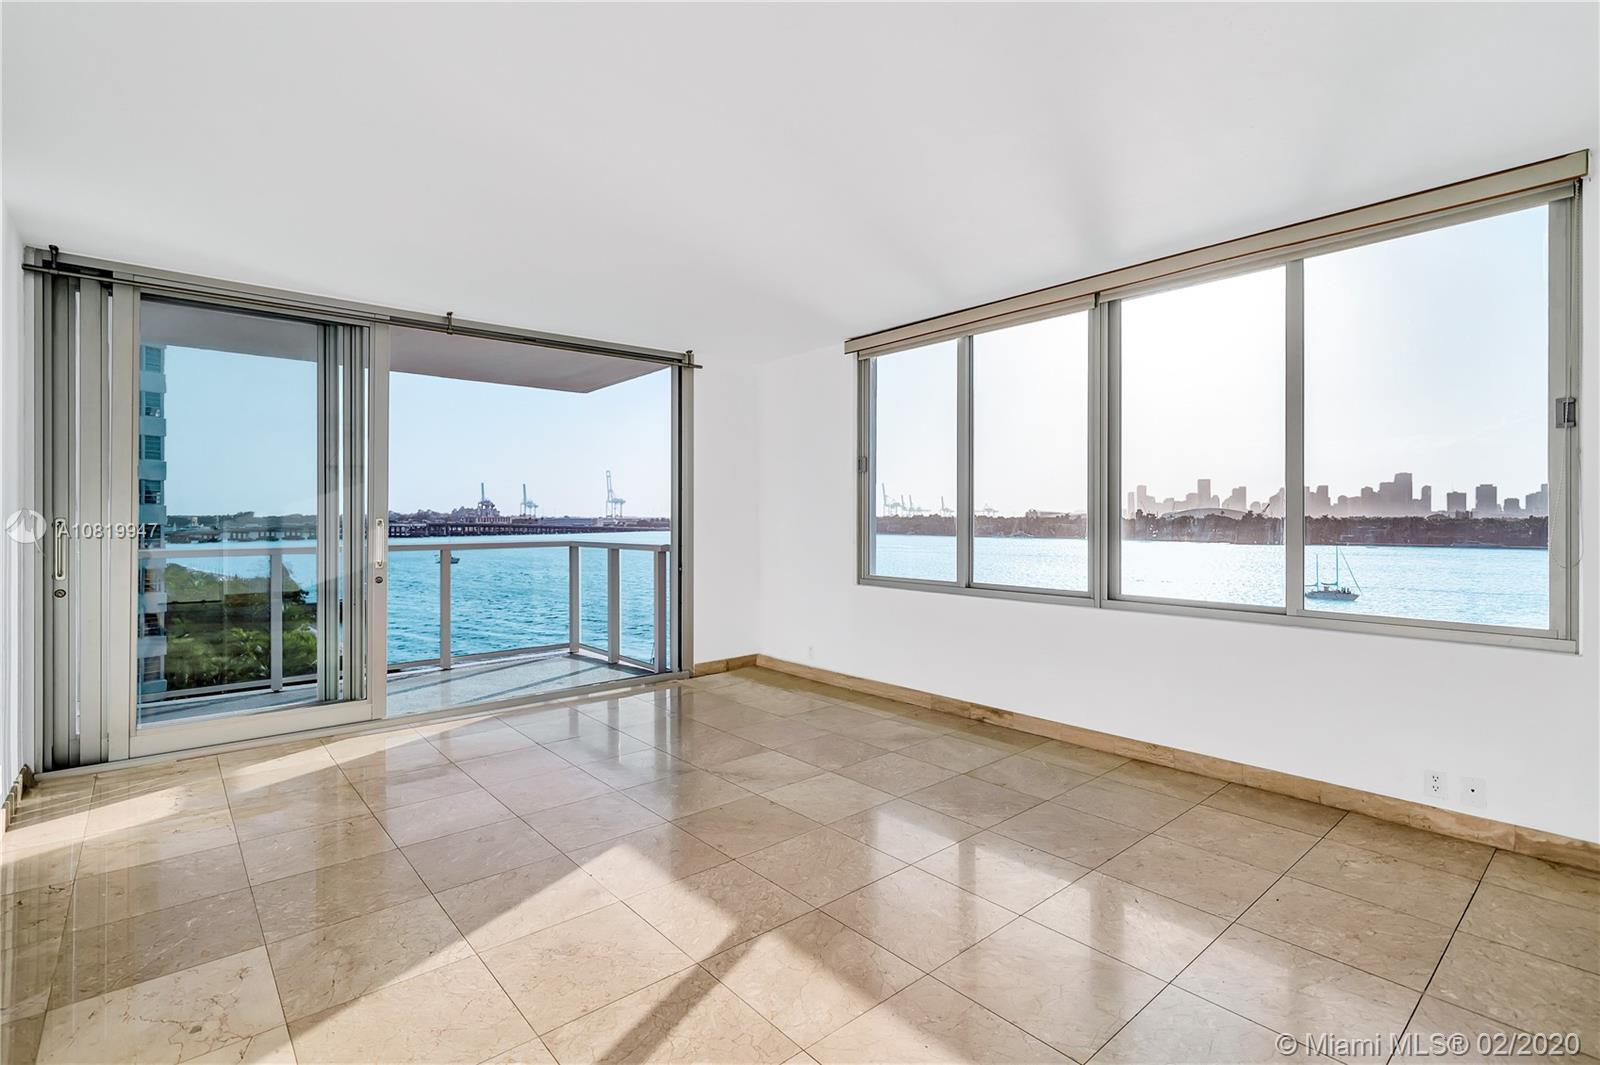 Rare find in South Beach acclaimed West Avenue : 2 bedroom / 2 bathrooms corner unit, with stunning